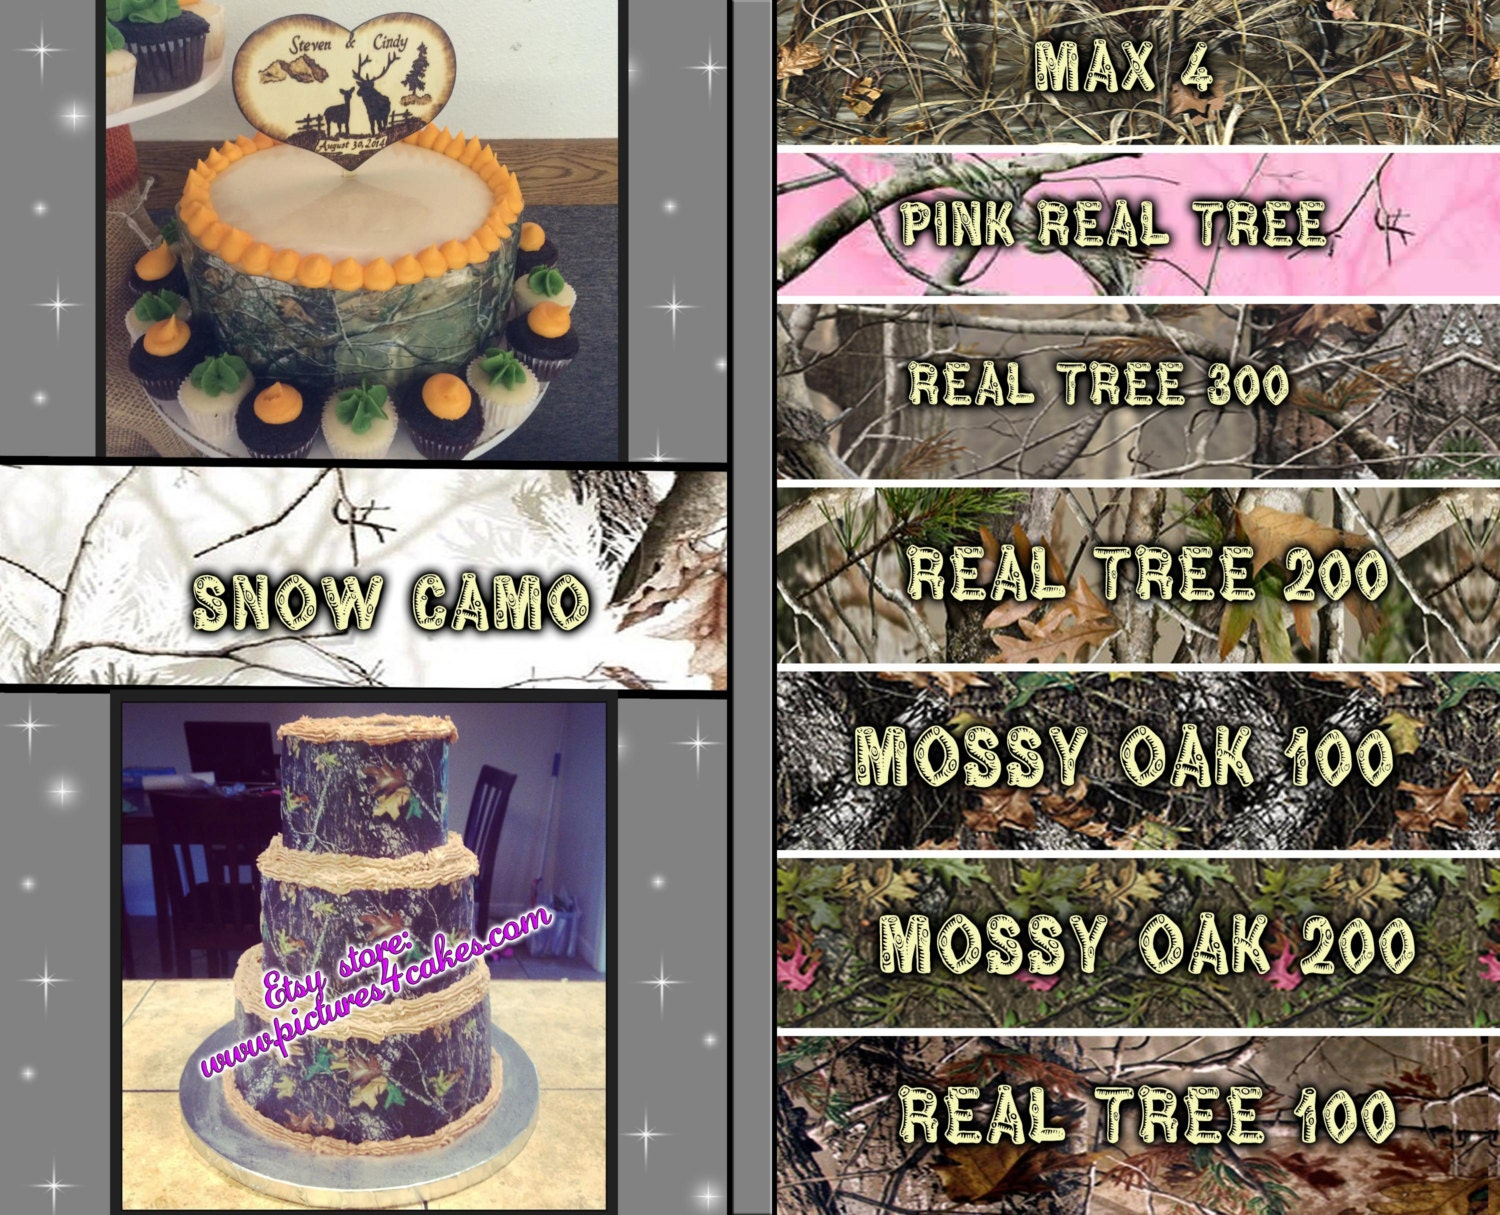 Camouflage cake strips or toppers edible sugar by Pictures4Cakes